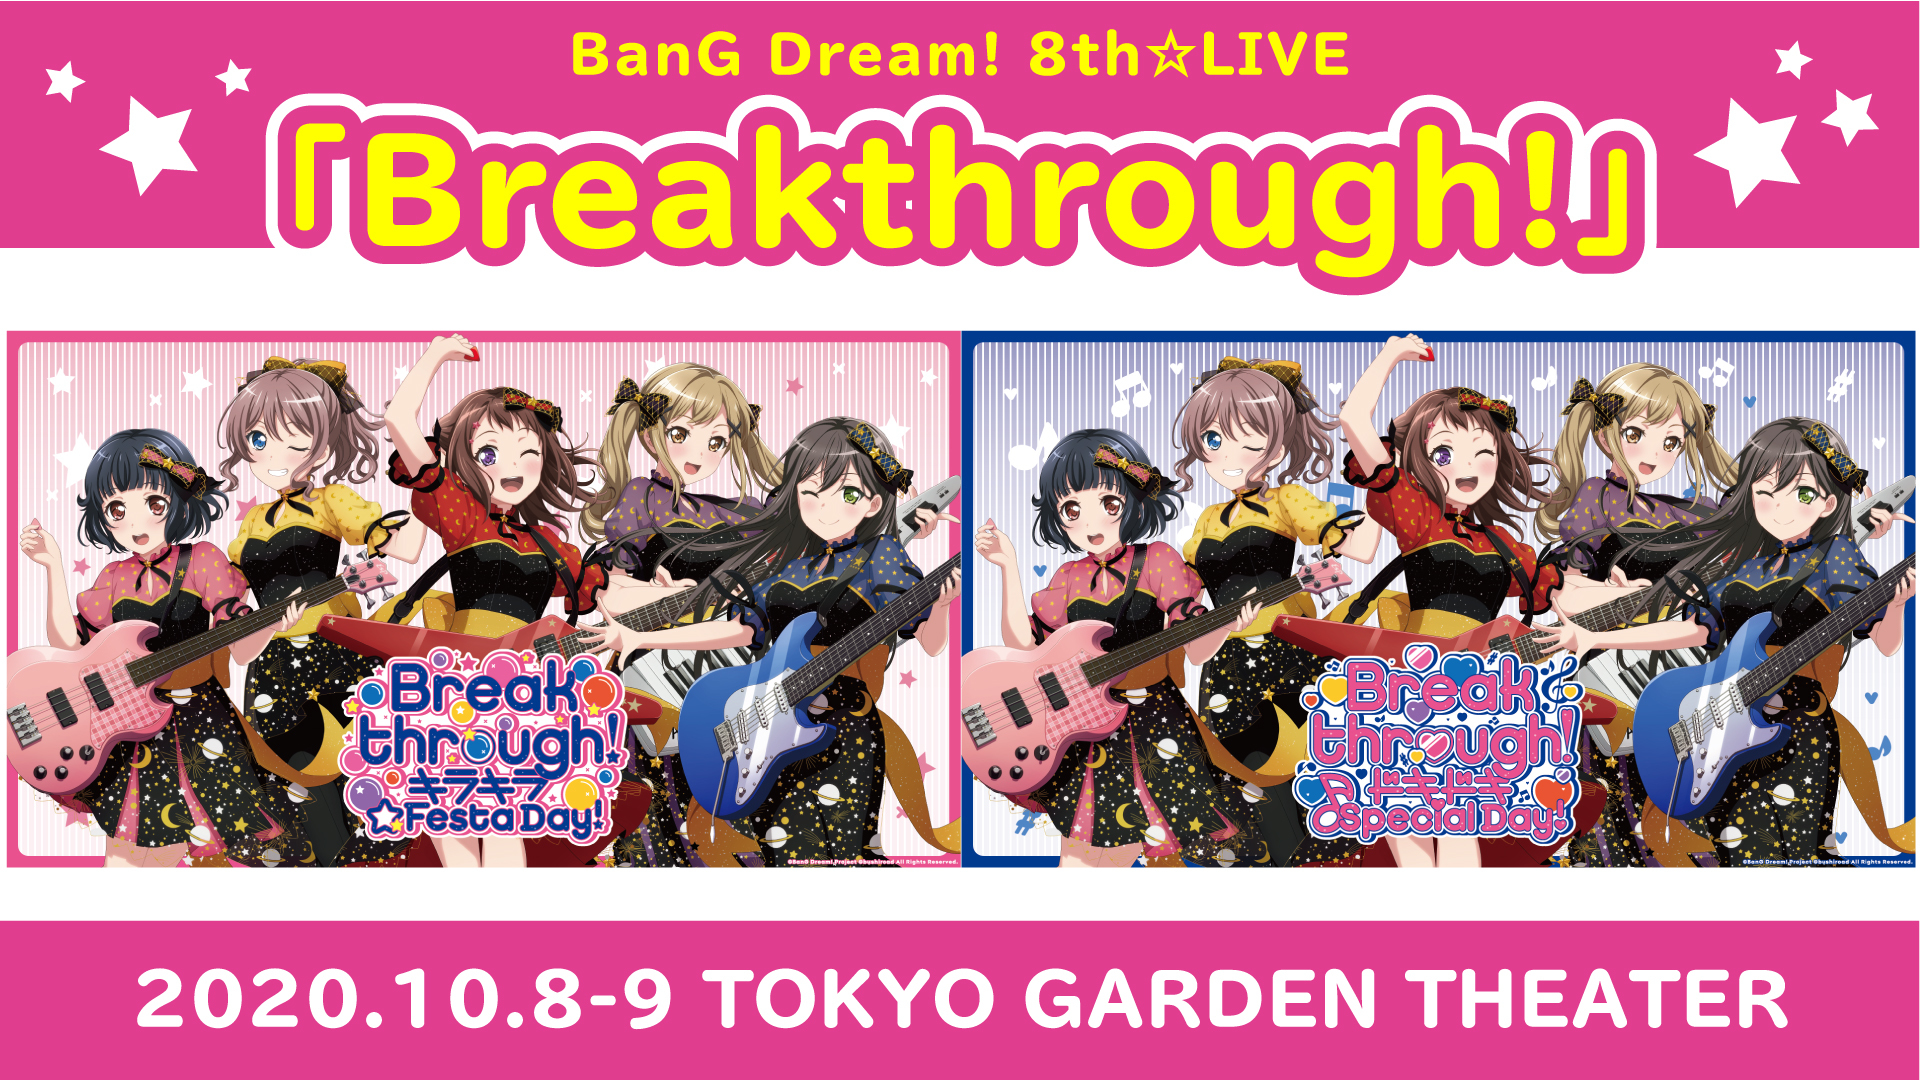 (C)BanG Dream! Project (C)Craft Egg Inc. (C)bushiroad All Rights Reserved.